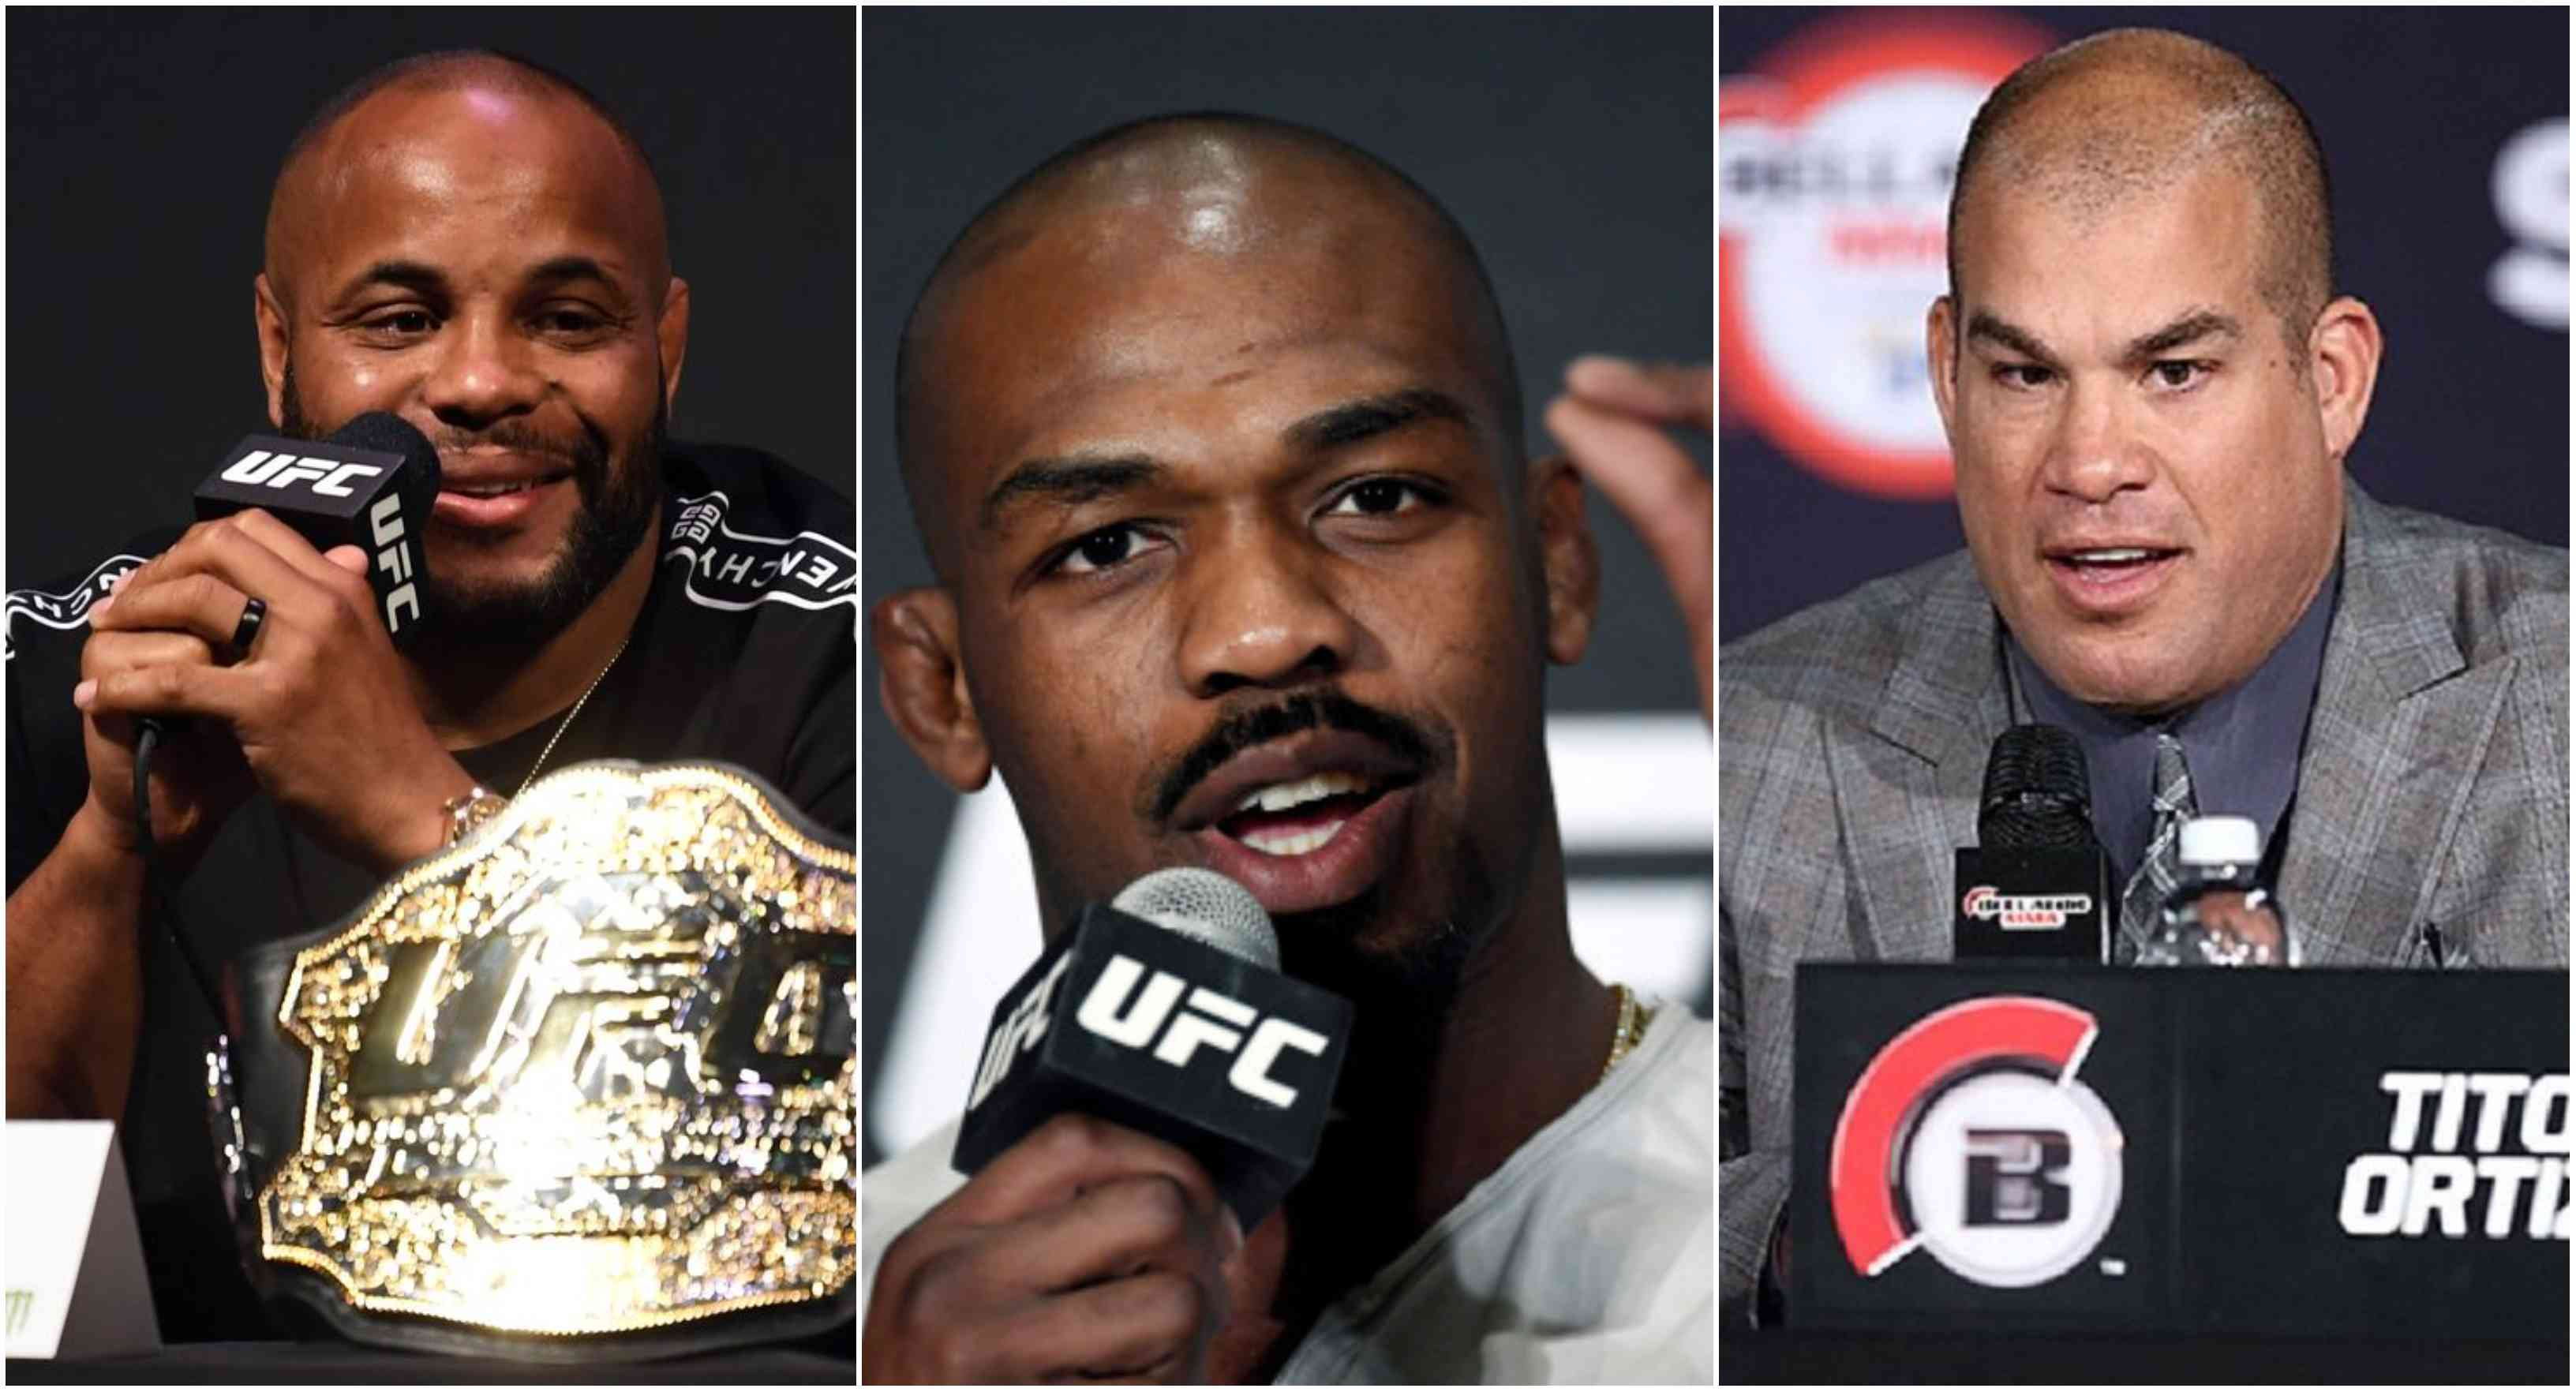 Tito Ortiz sincerely apologises to Jon Jones and DC for 'disrespectful' comments - Ortiz